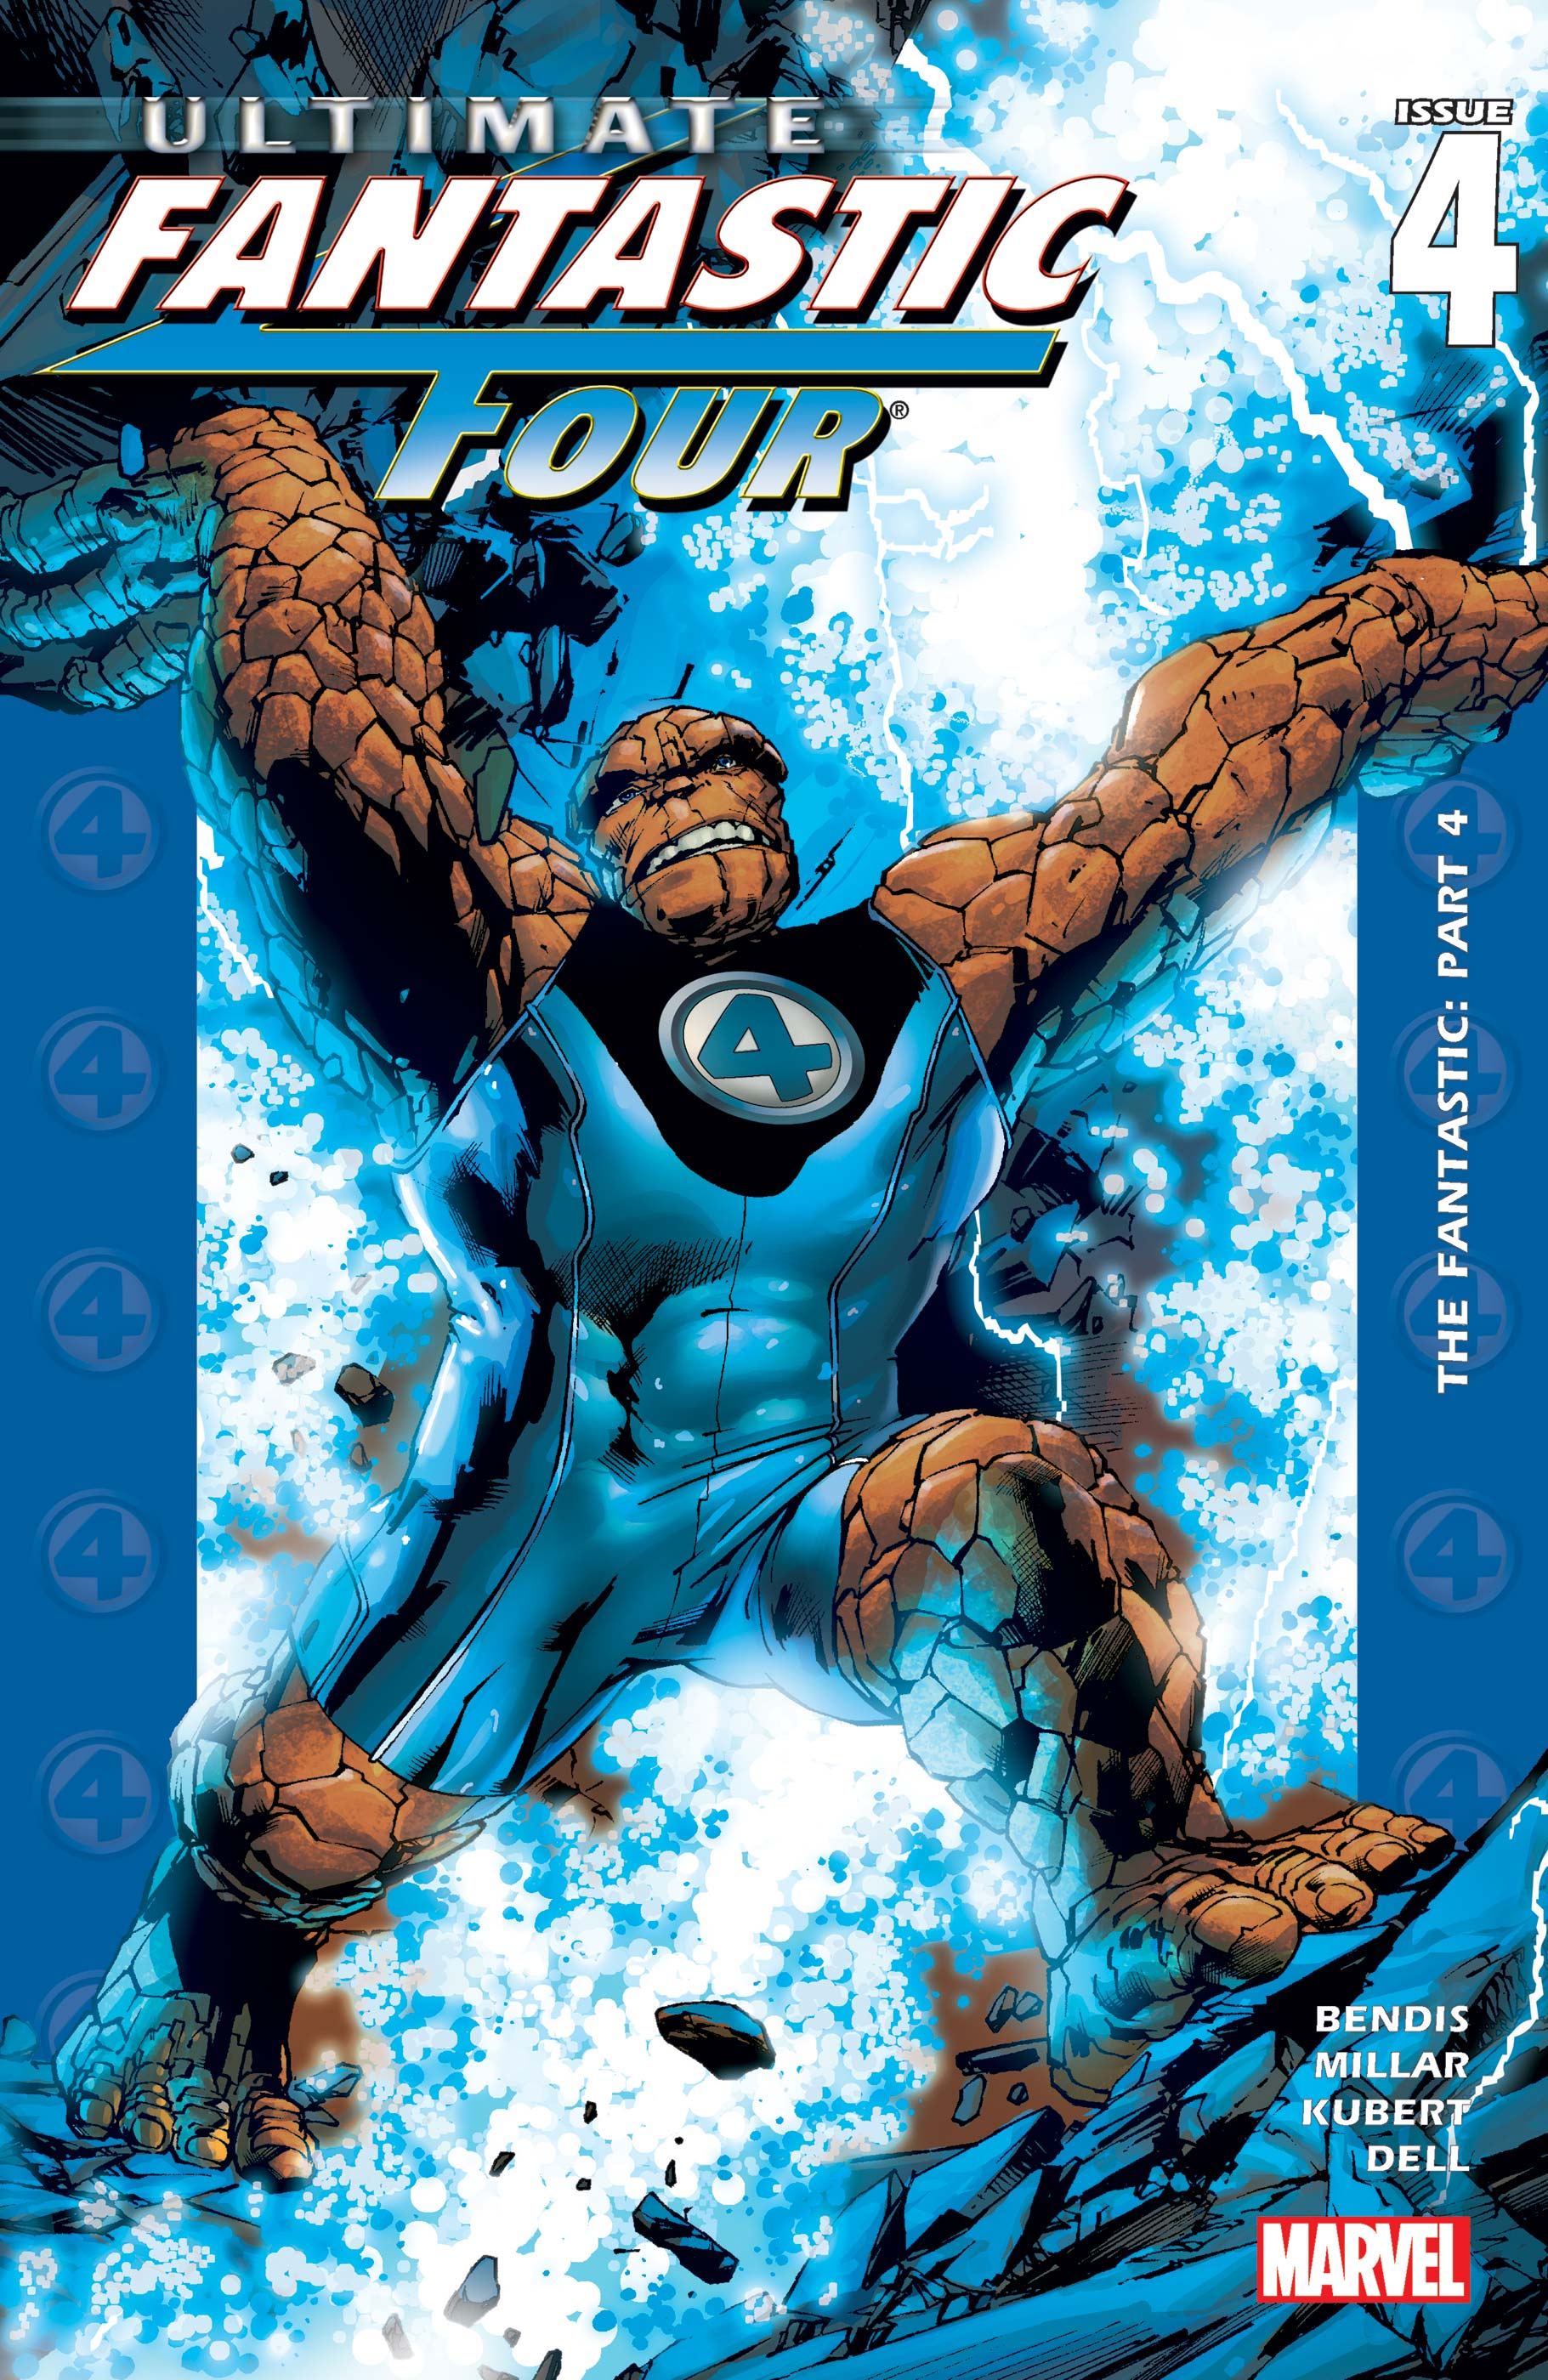 Ultimate Fantastic Four (2003) #4